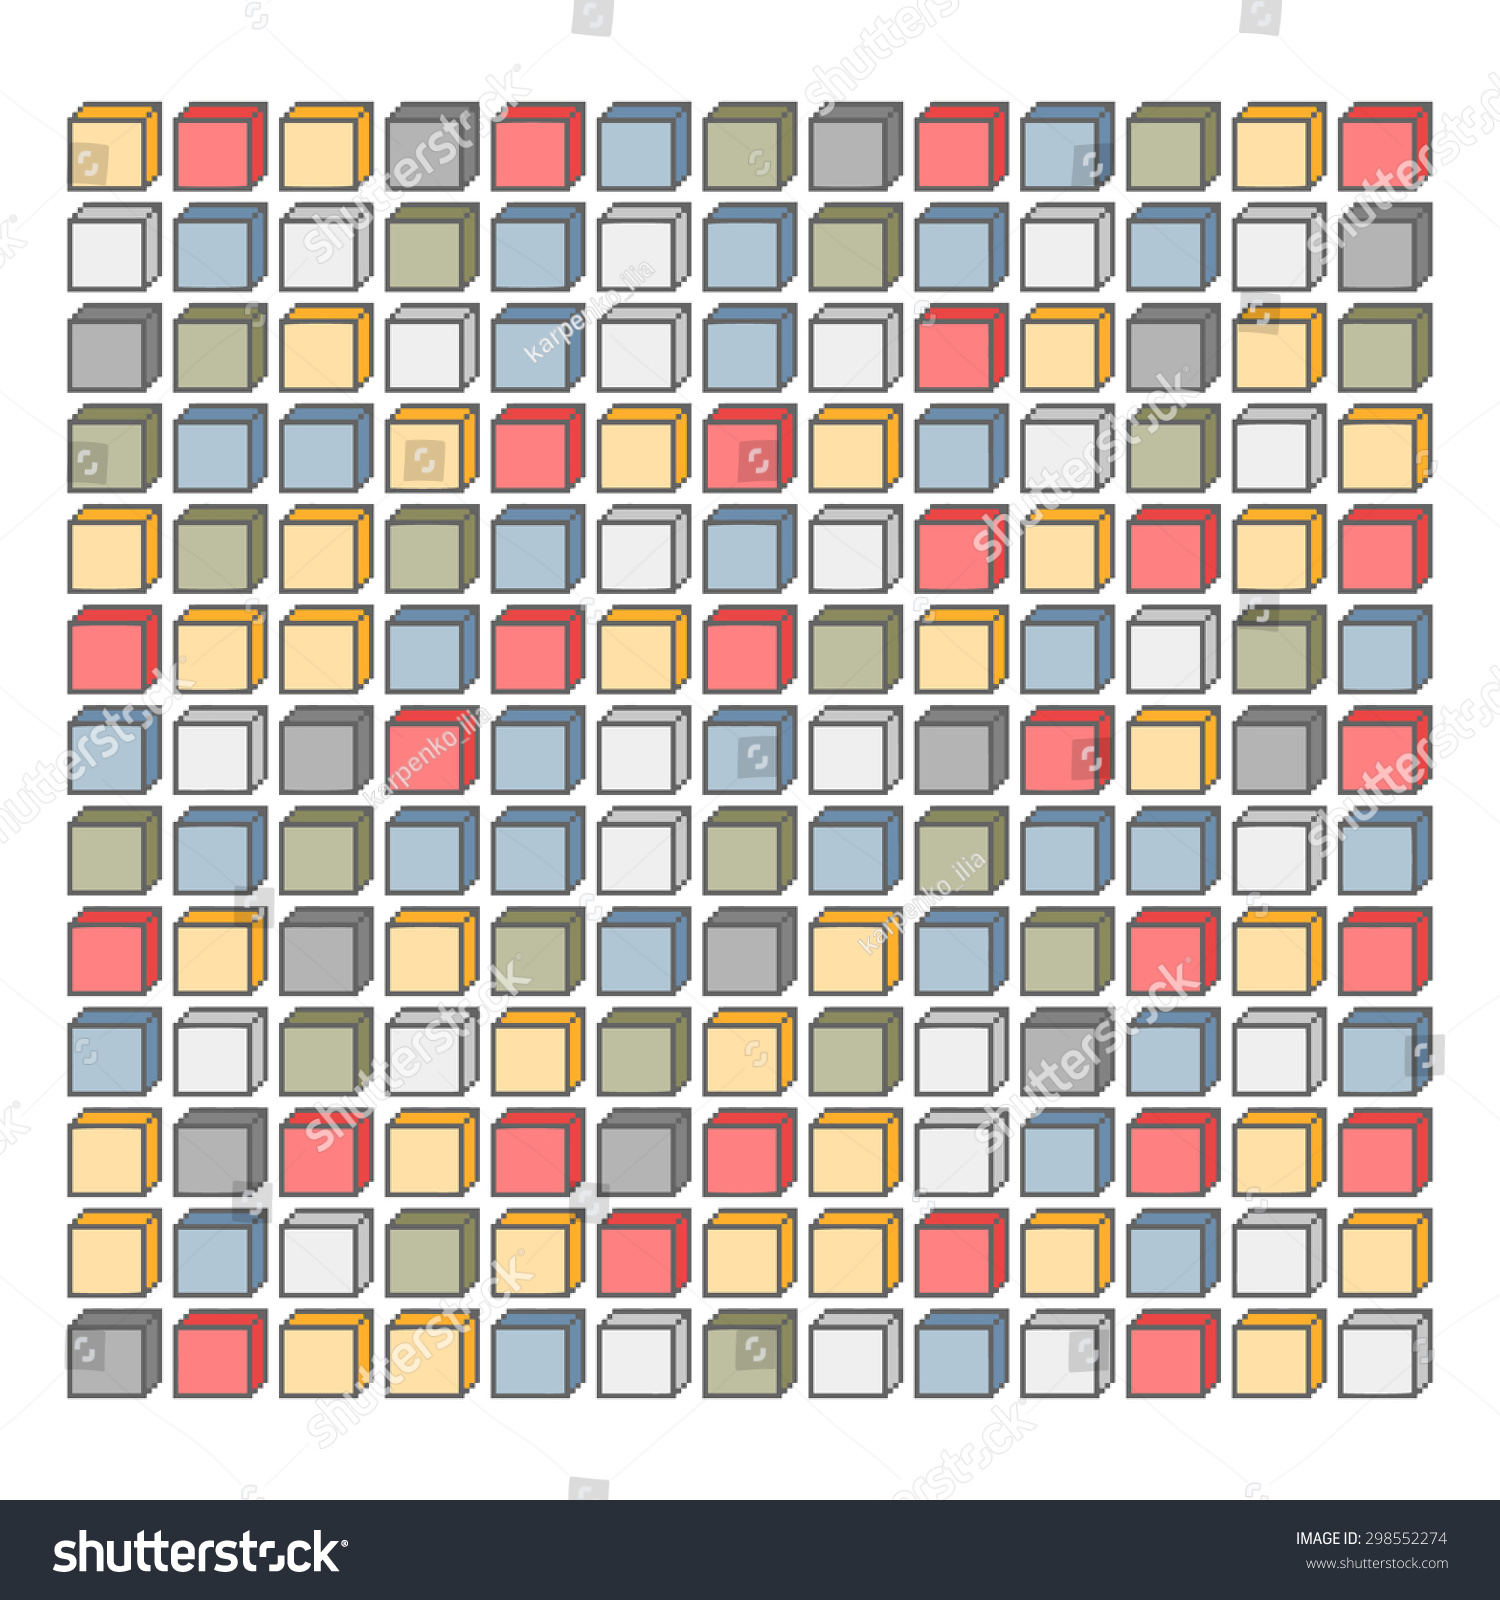 Pixel Art Background Colored Cubes Kids Stock Illustration ...